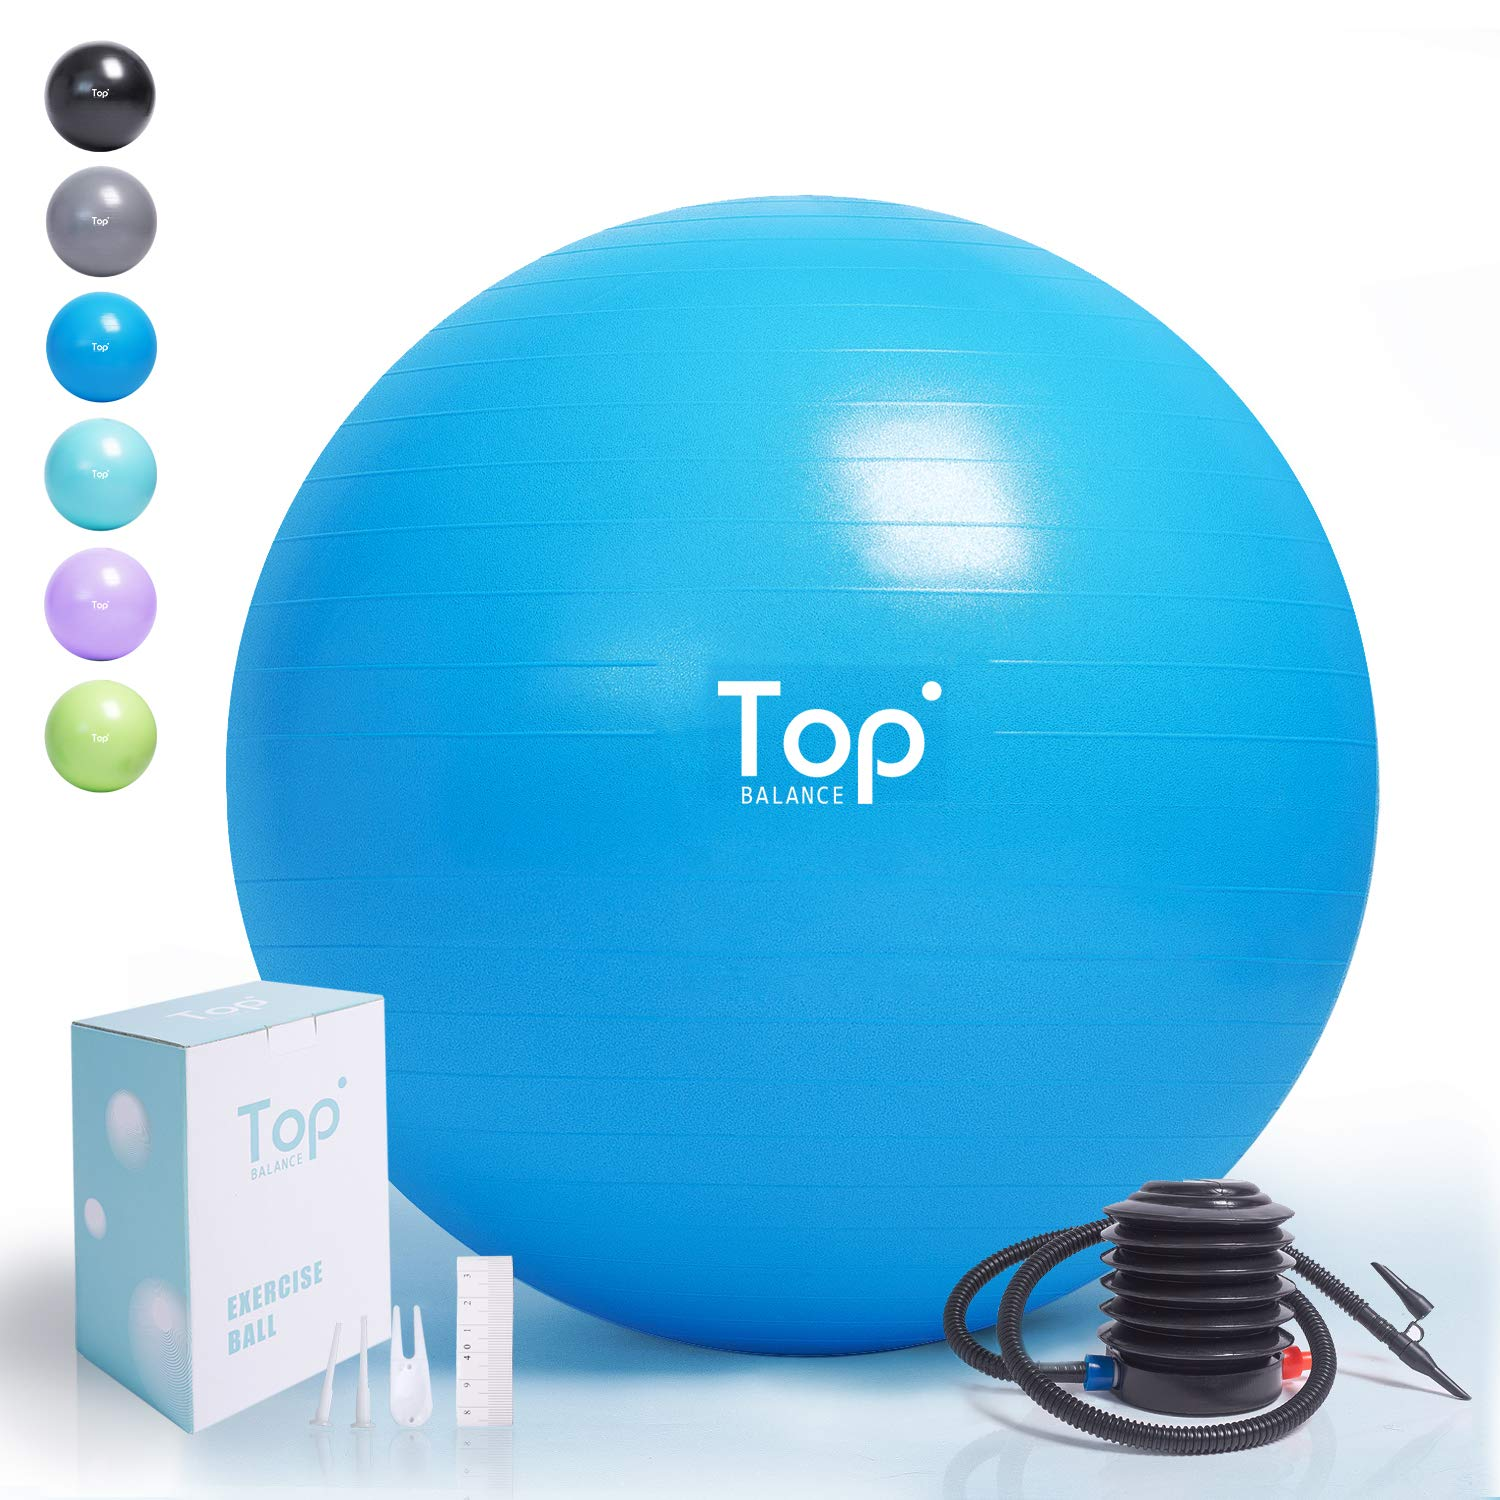 Top Balance Anti-Burst Exercise Ball (Blue, 55cm), Extra Thick Construction Supports up to 1000 lbs, Used for Fitness/Yoga/Ball Chair/Birthing with Easy to Inflate Foot Pump (Office & Home & Gym) by Top Balance